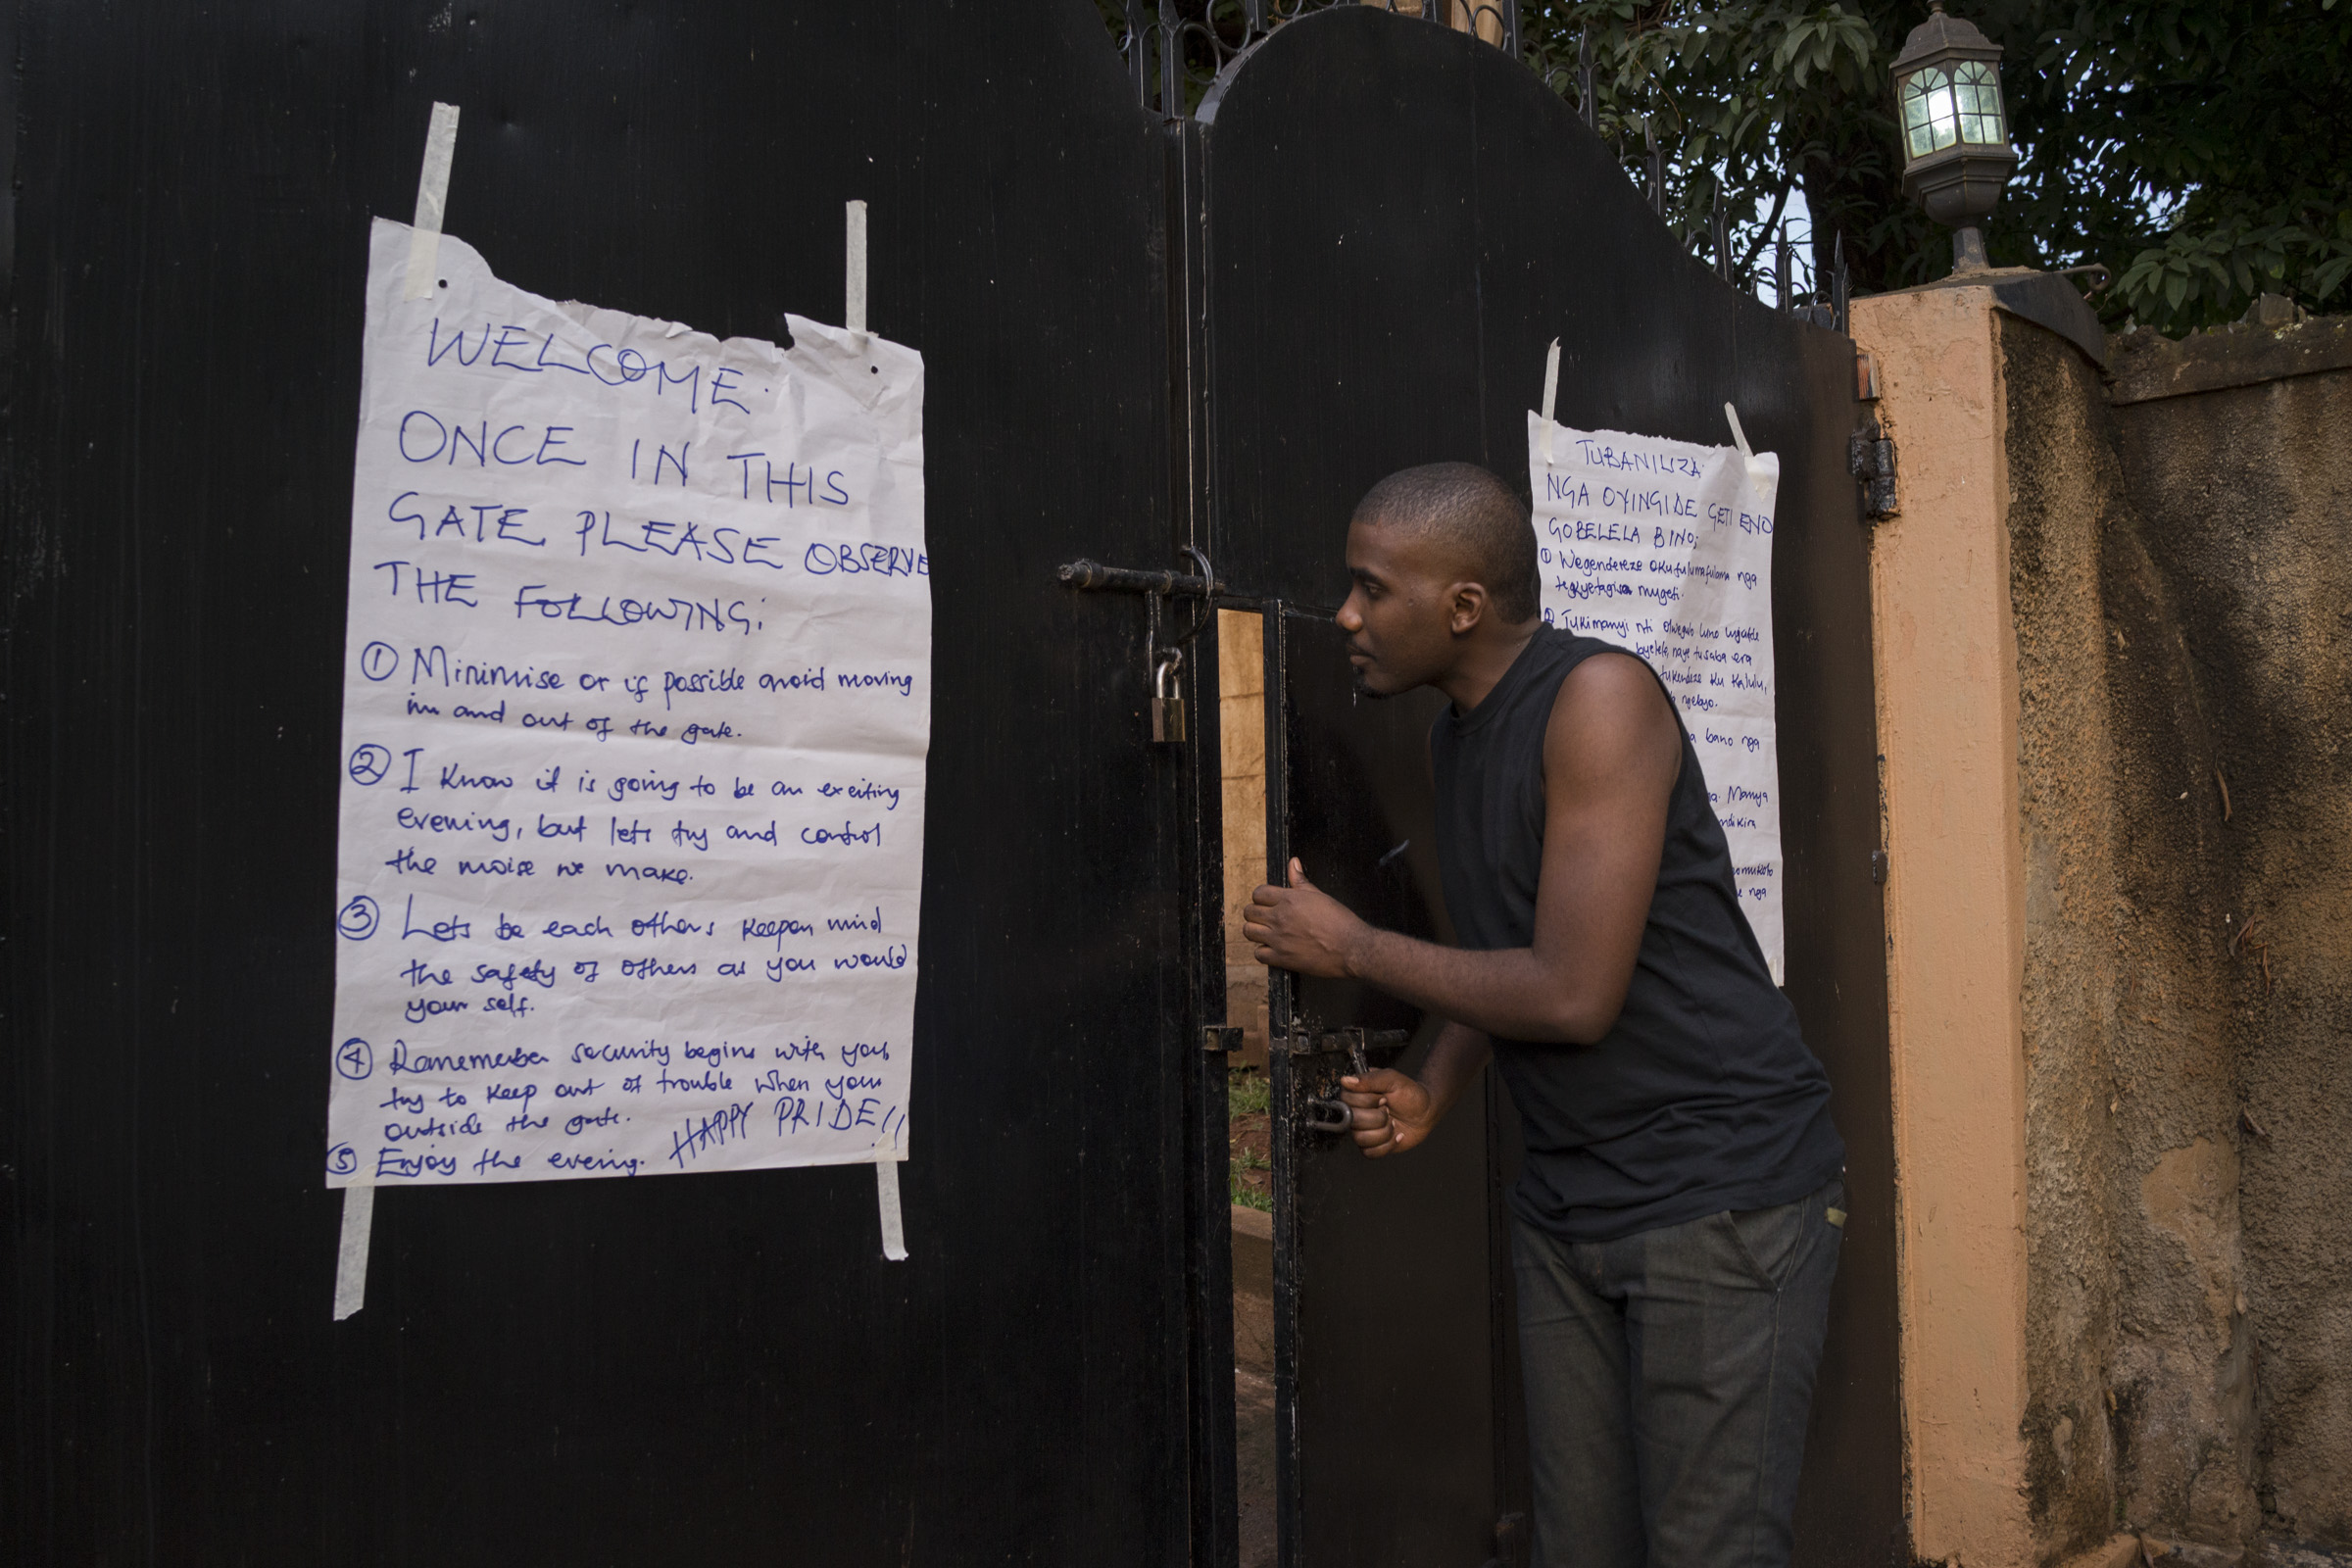 """The appointed gatekeeper opens the door to let in a member of the LGBT community. To ensure the security of particiants, events were held in """"secret,"""" at private locations that were disclosed to members of the LGBT community and their supporters just one or two days before an event. (Photo by Diana Zeyneb Alhindawi/GroundTruth)"""